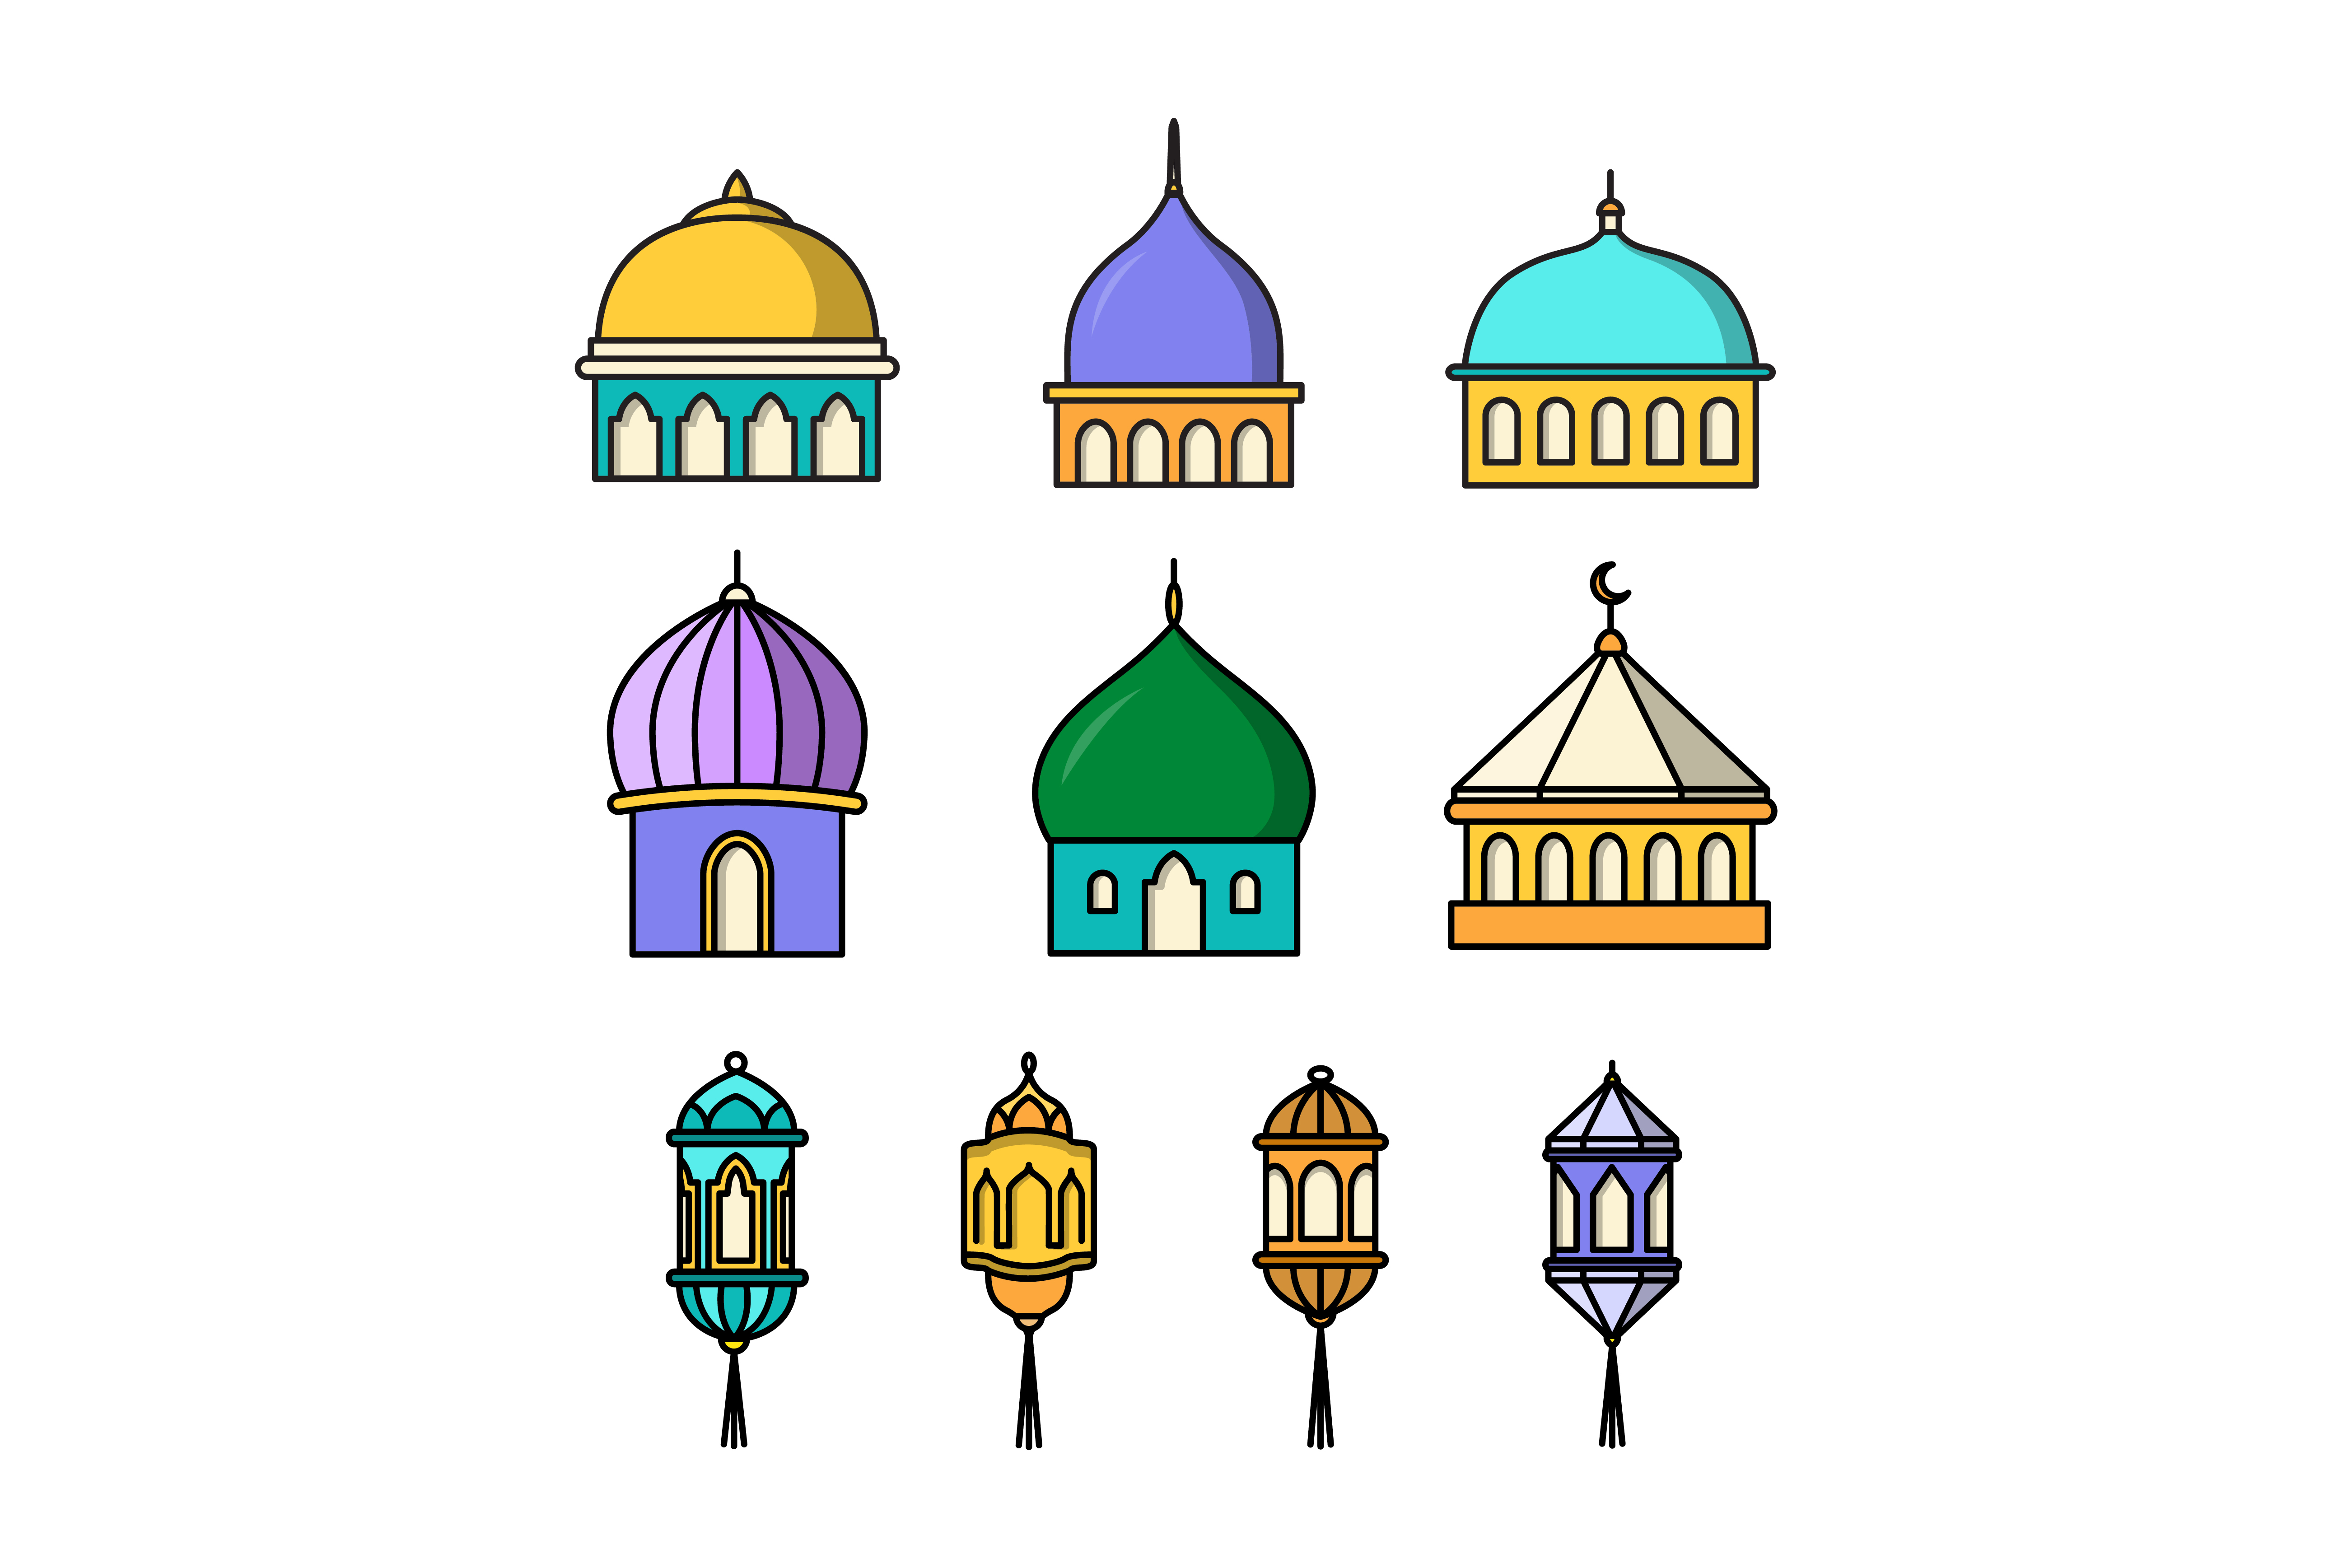 Download Free Collection Of Mosque And Lanterns Graphic By Sabavector for Cricut Explore, Silhouette and other cutting machines.